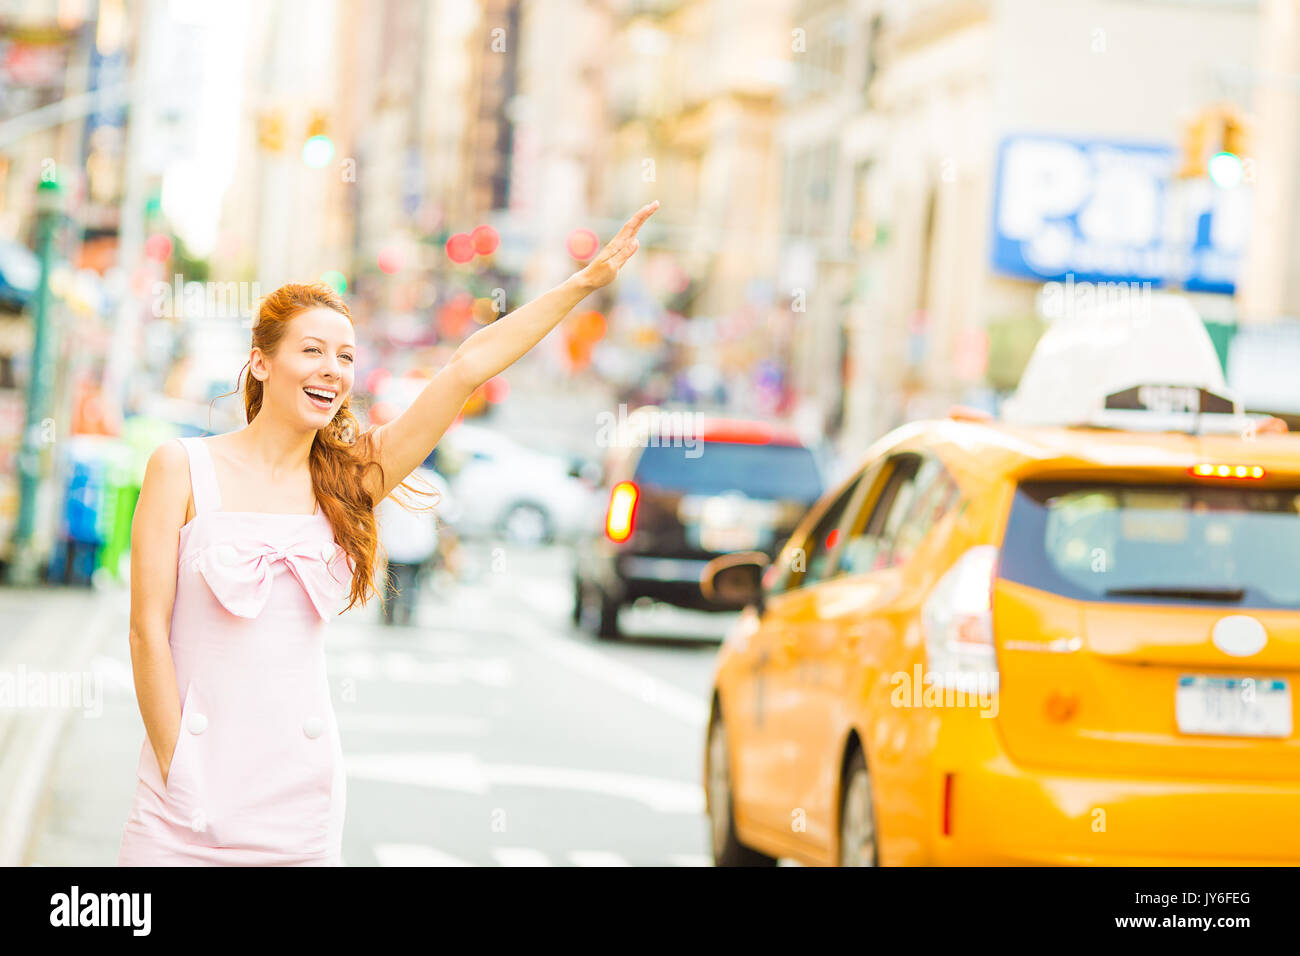 A young woman hailing a yellow taxi cab while walking on a street in New York city Stock Photo